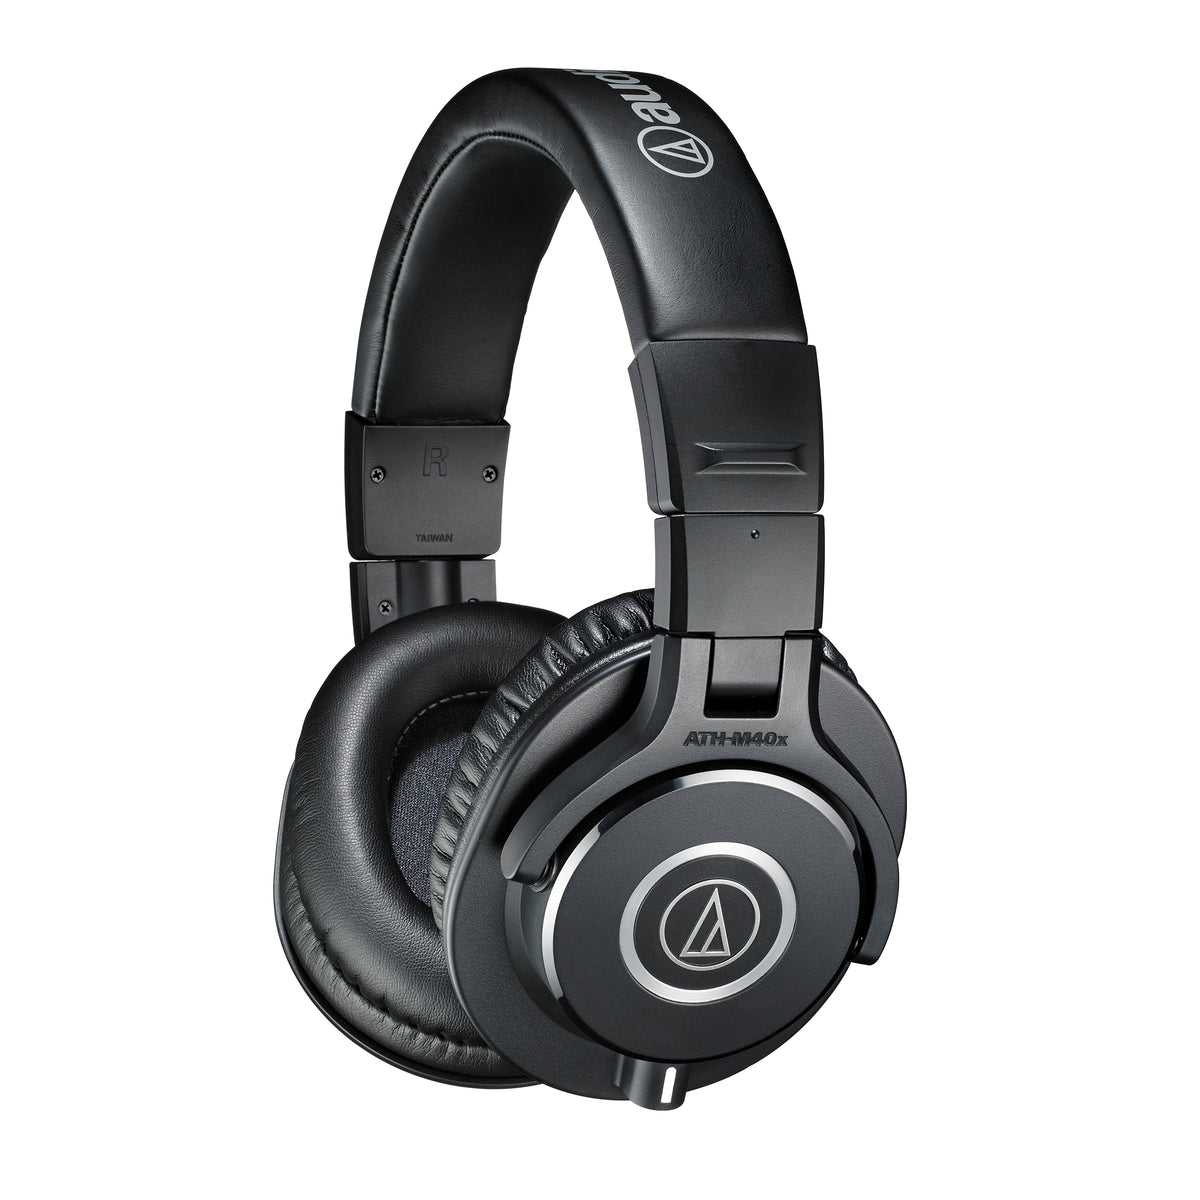 Audio-Technica: ATH-M40x Studio Monitoring Headphones